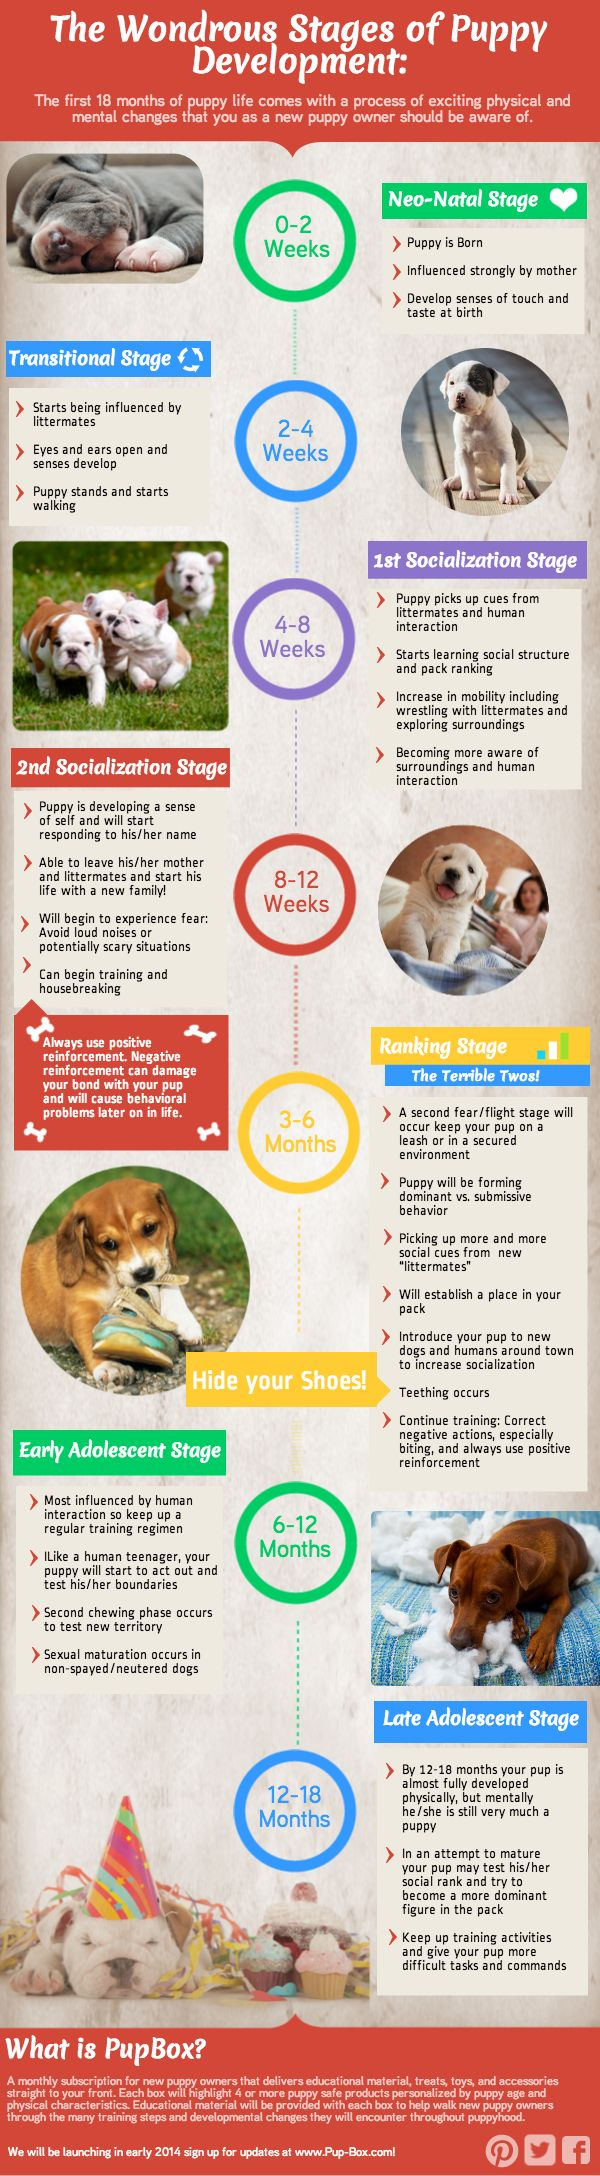 The Wondrous Stages Of Puppy Development [Infographic]                                                                                                                                                                                 More